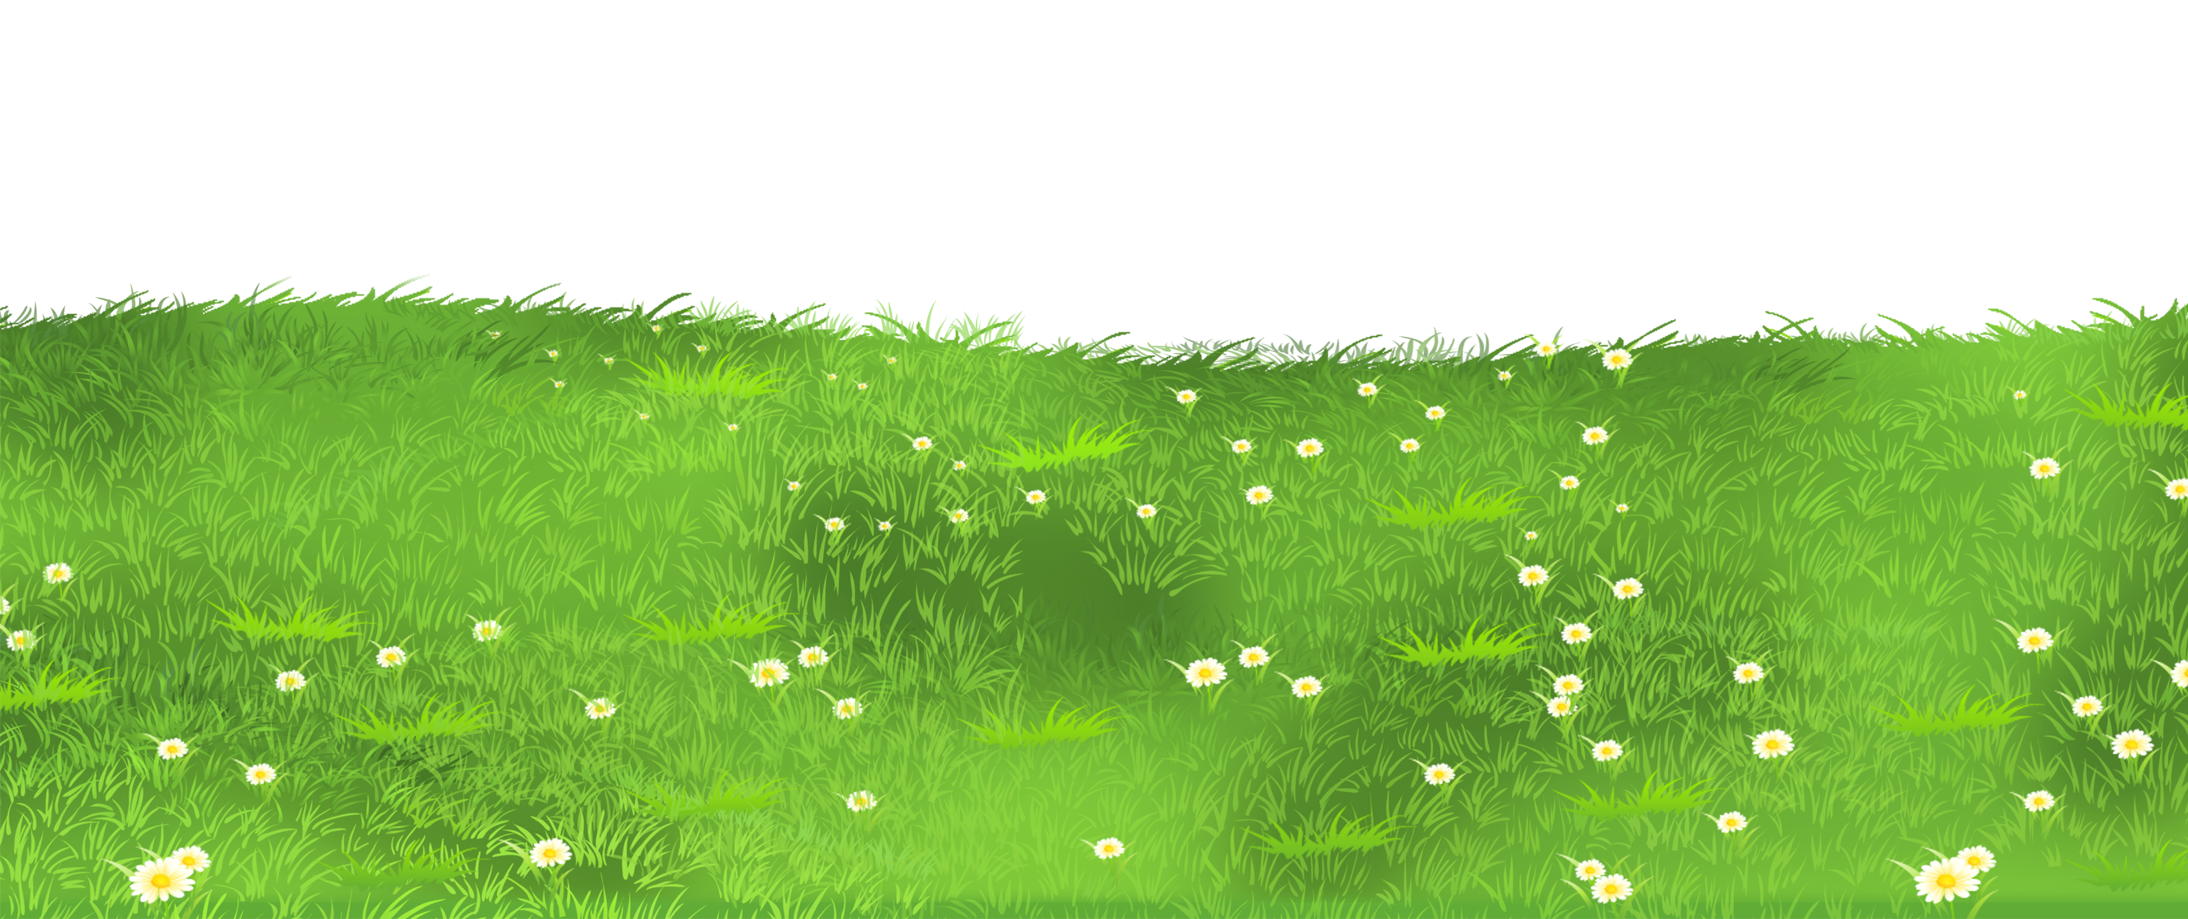 Grassy field clipart image library Free Grass Field Cliparts, Download Free Clip Art, Free Clip Art on ... image library